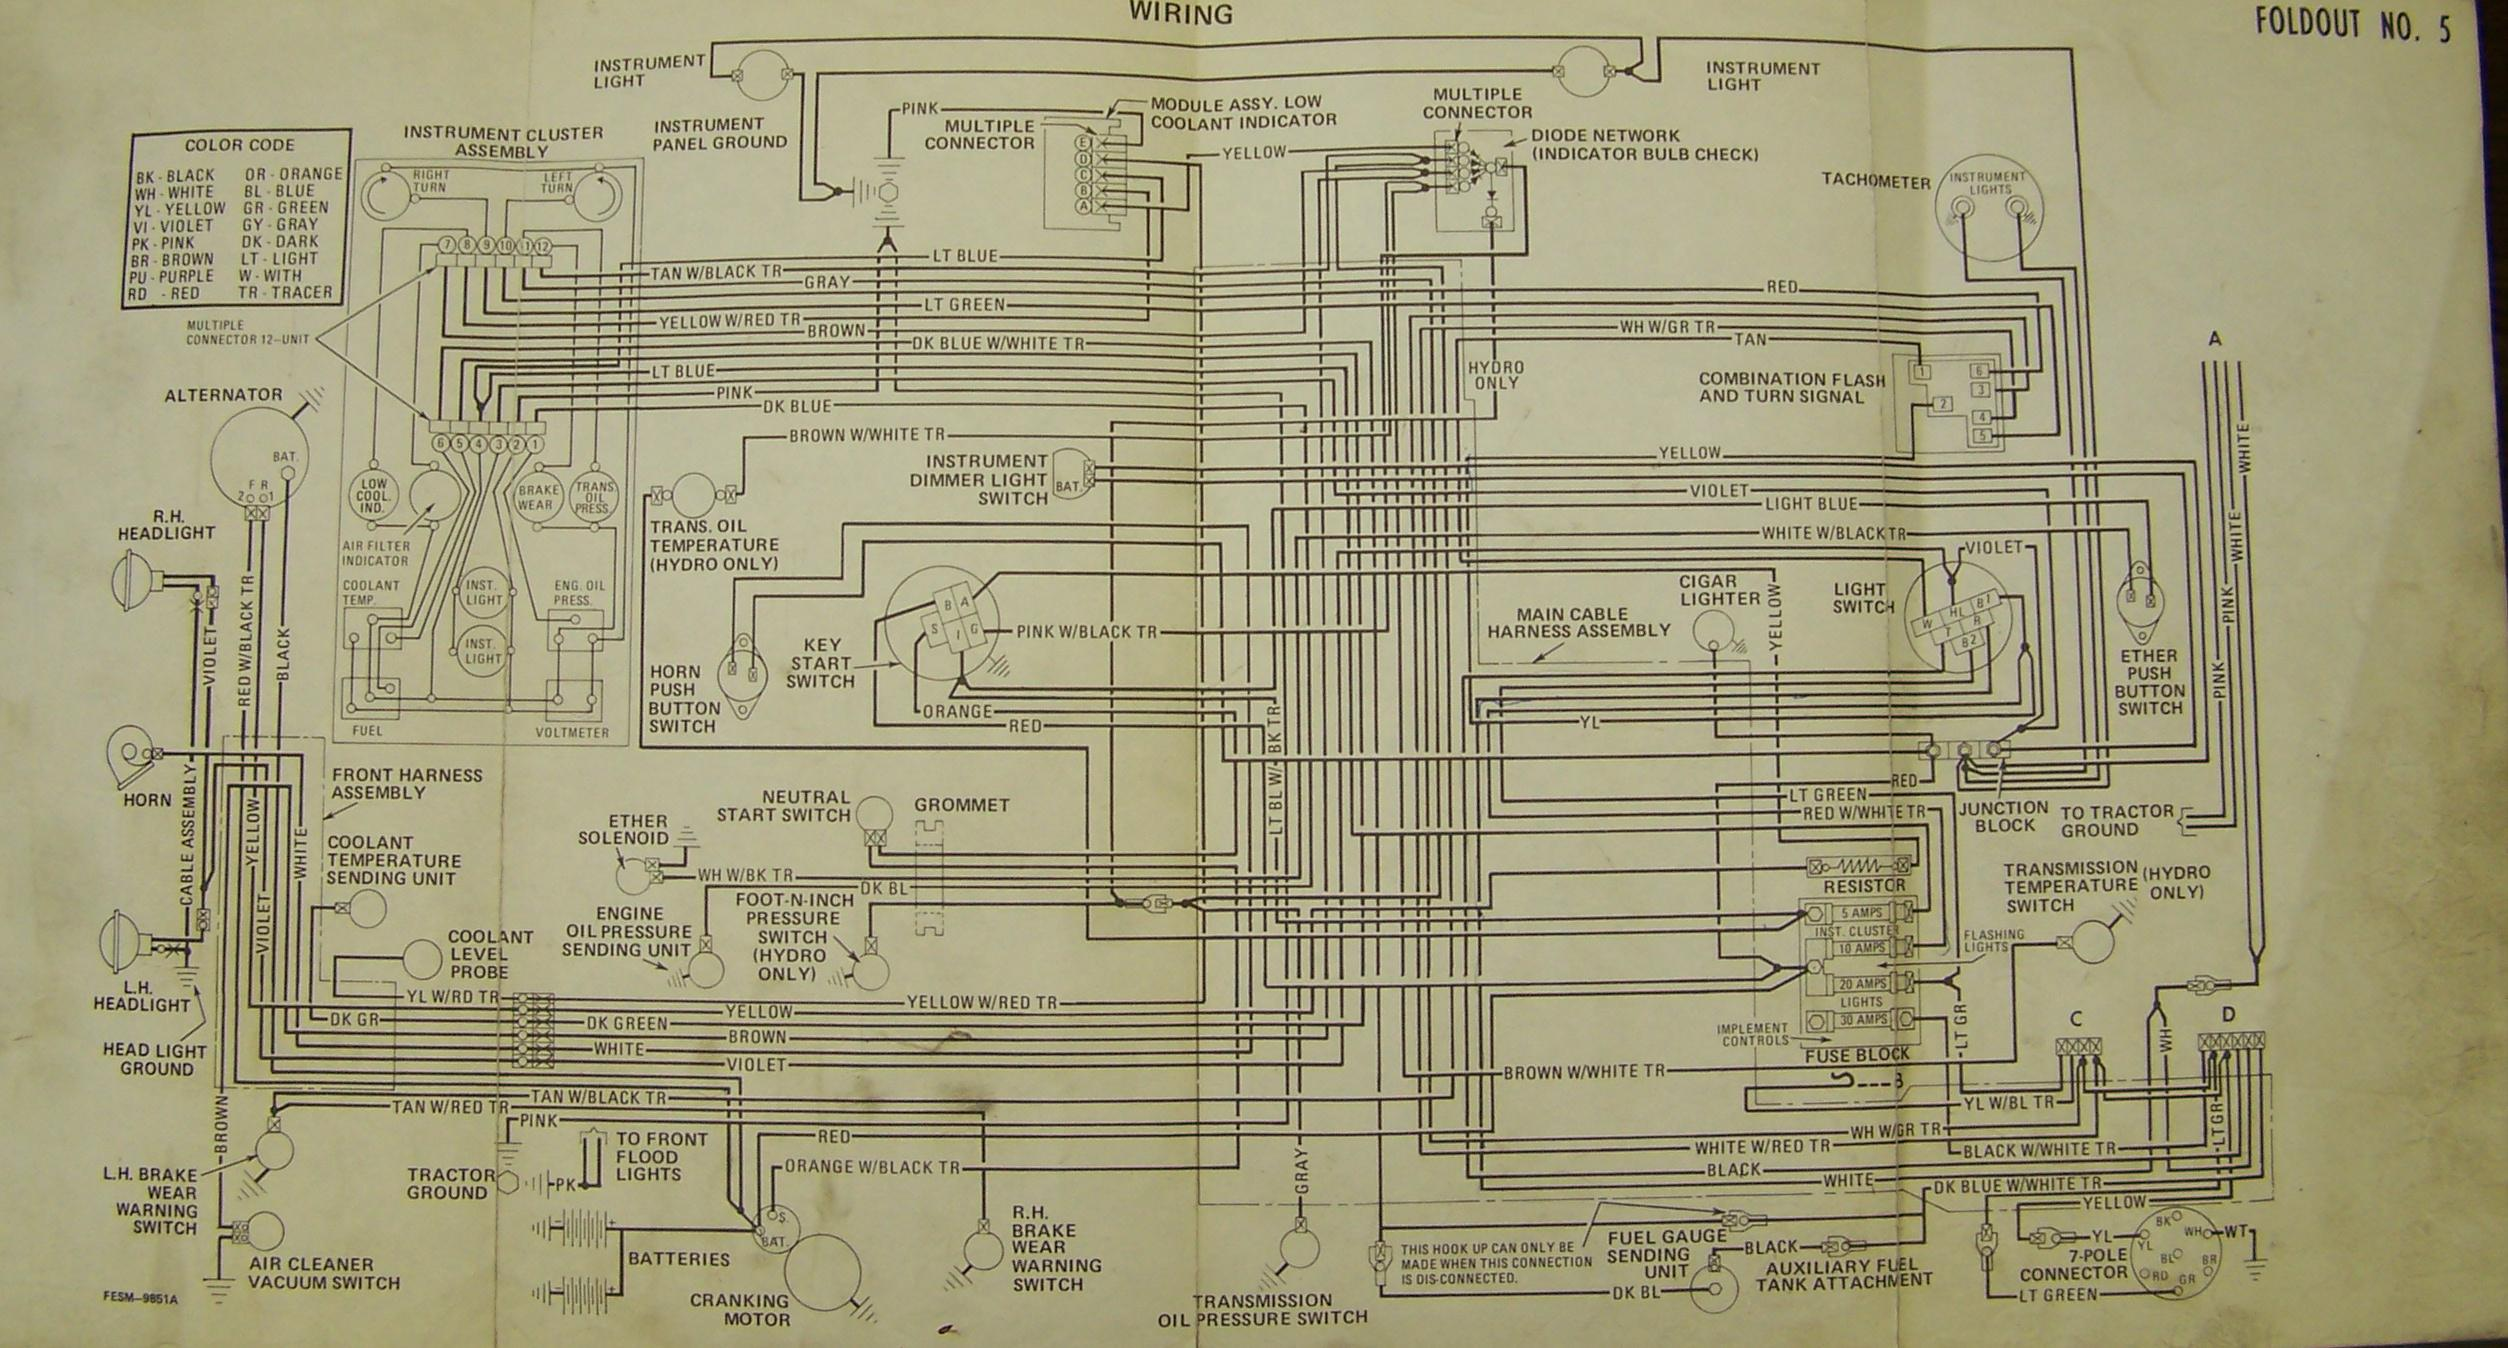 ih 300 wiring diagram